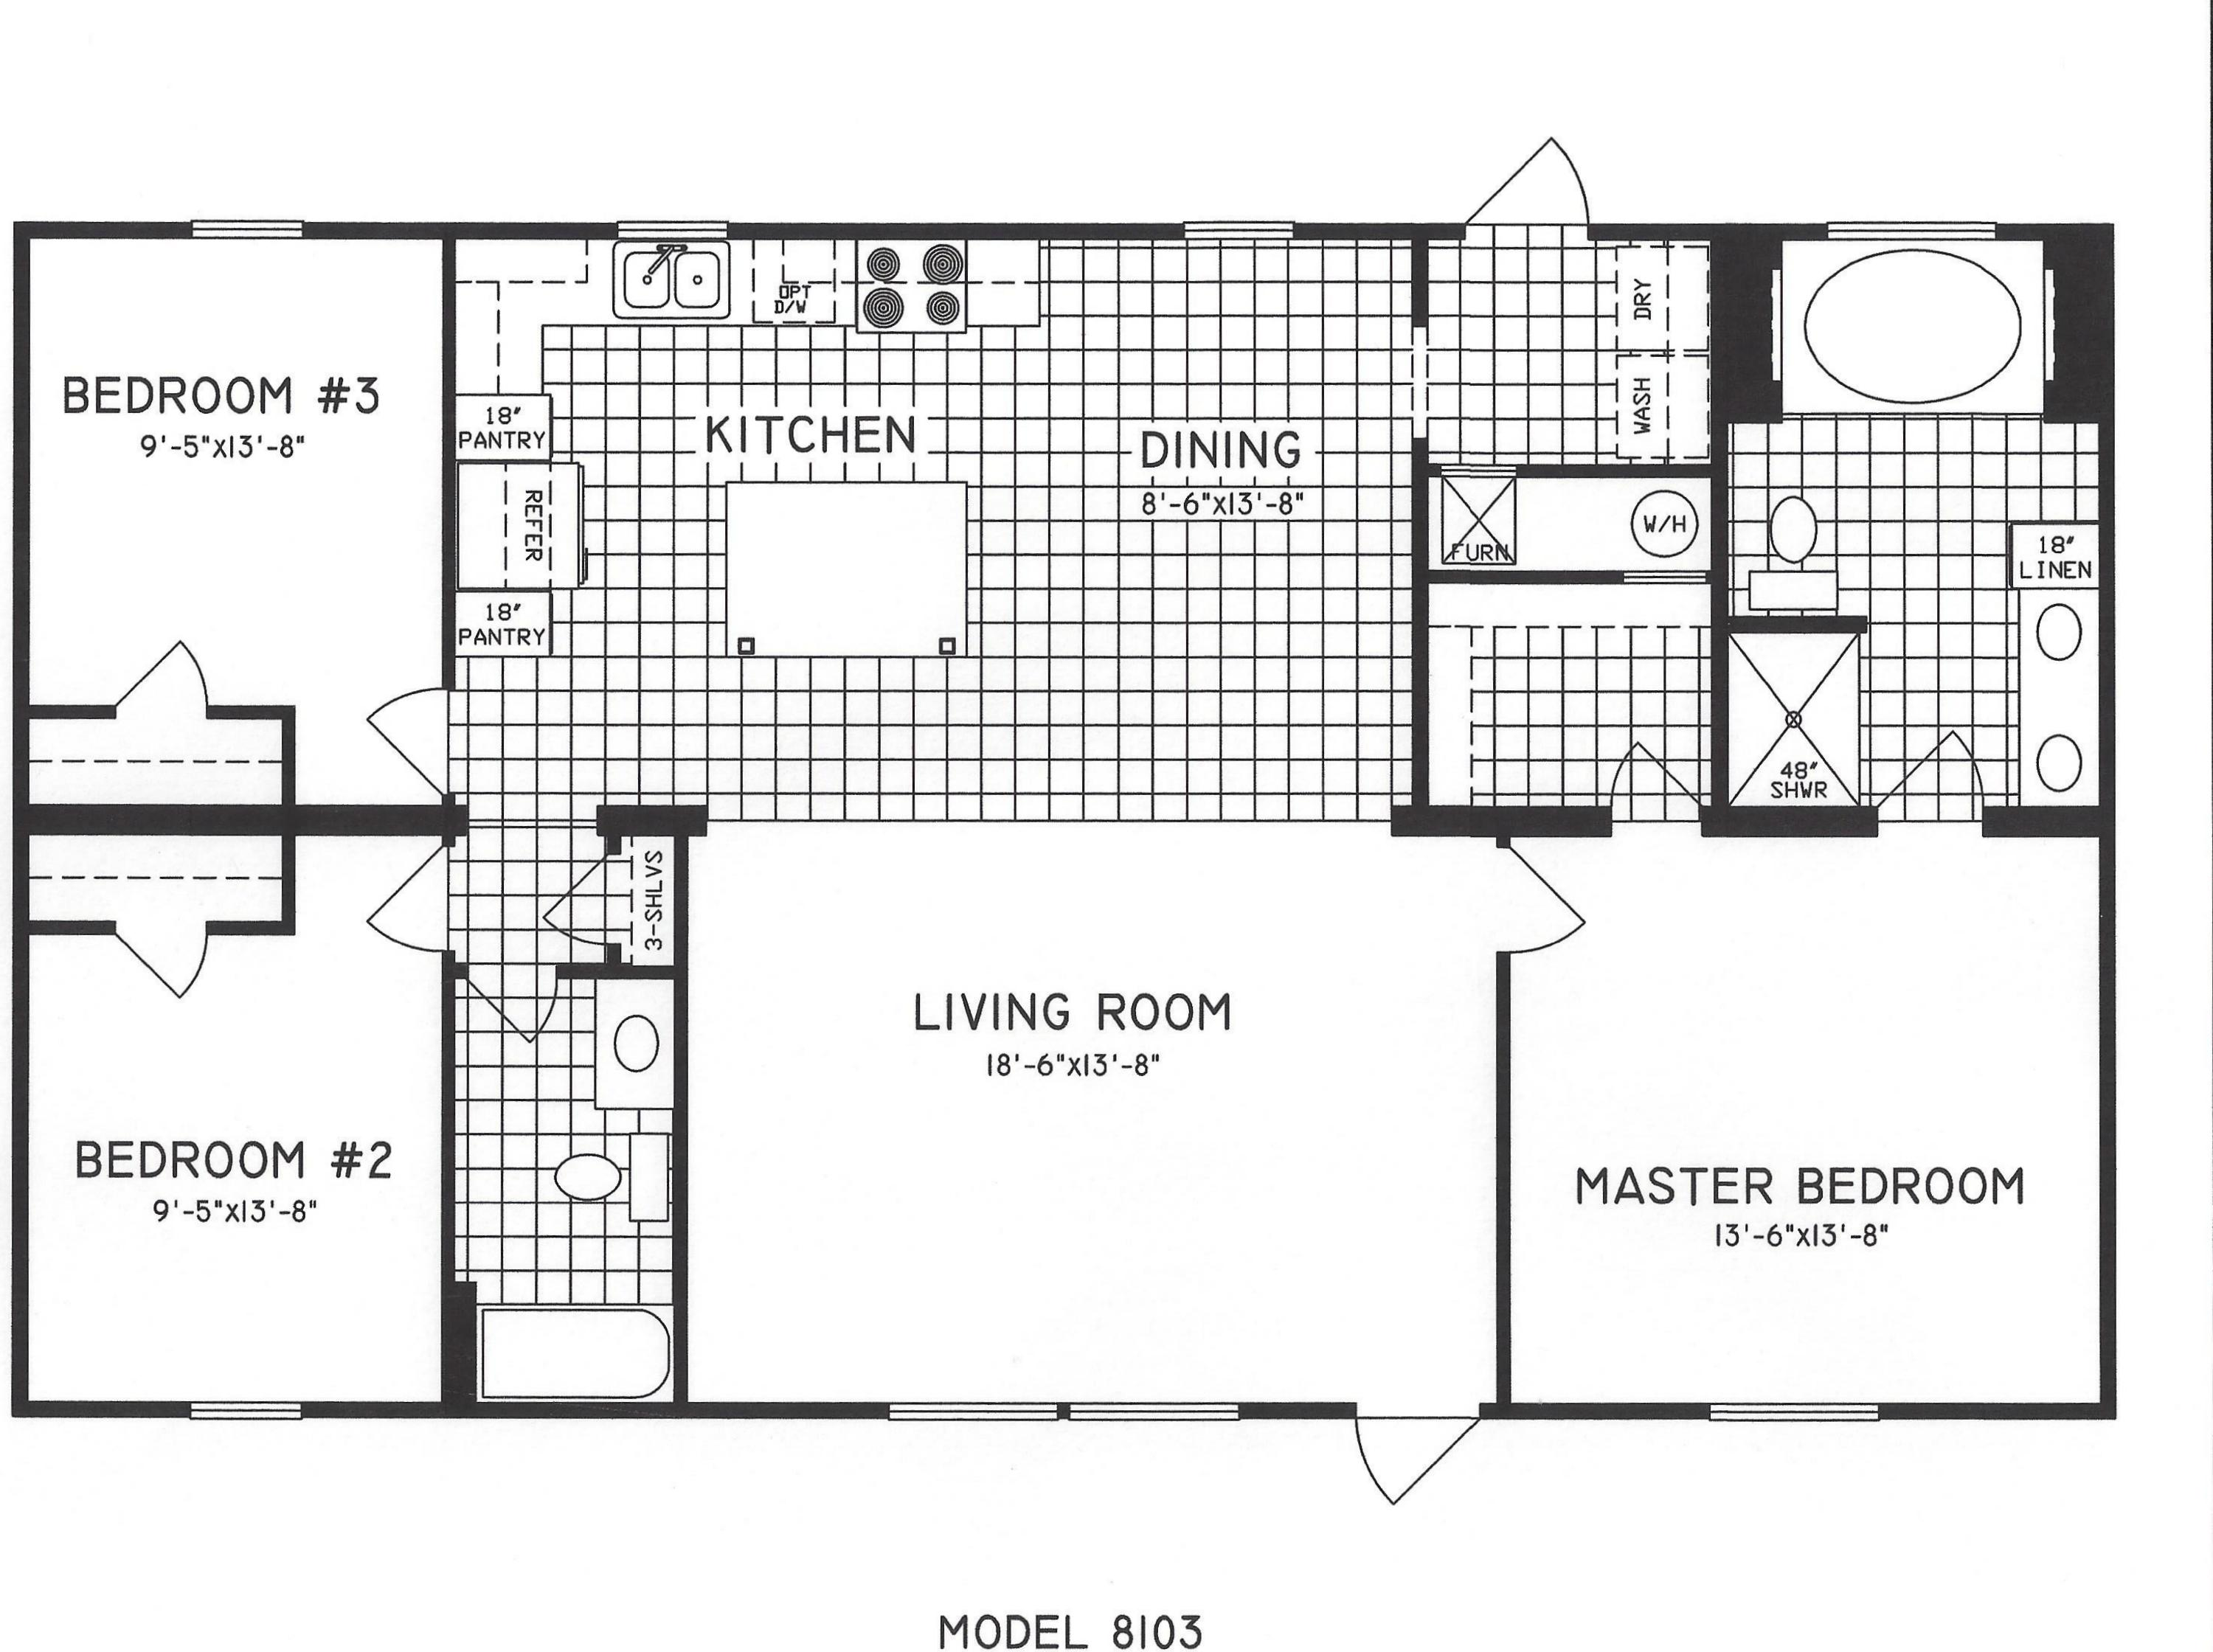 Merveilleux New 28×52 3 Bedroom 2 Bath With An Open Layout